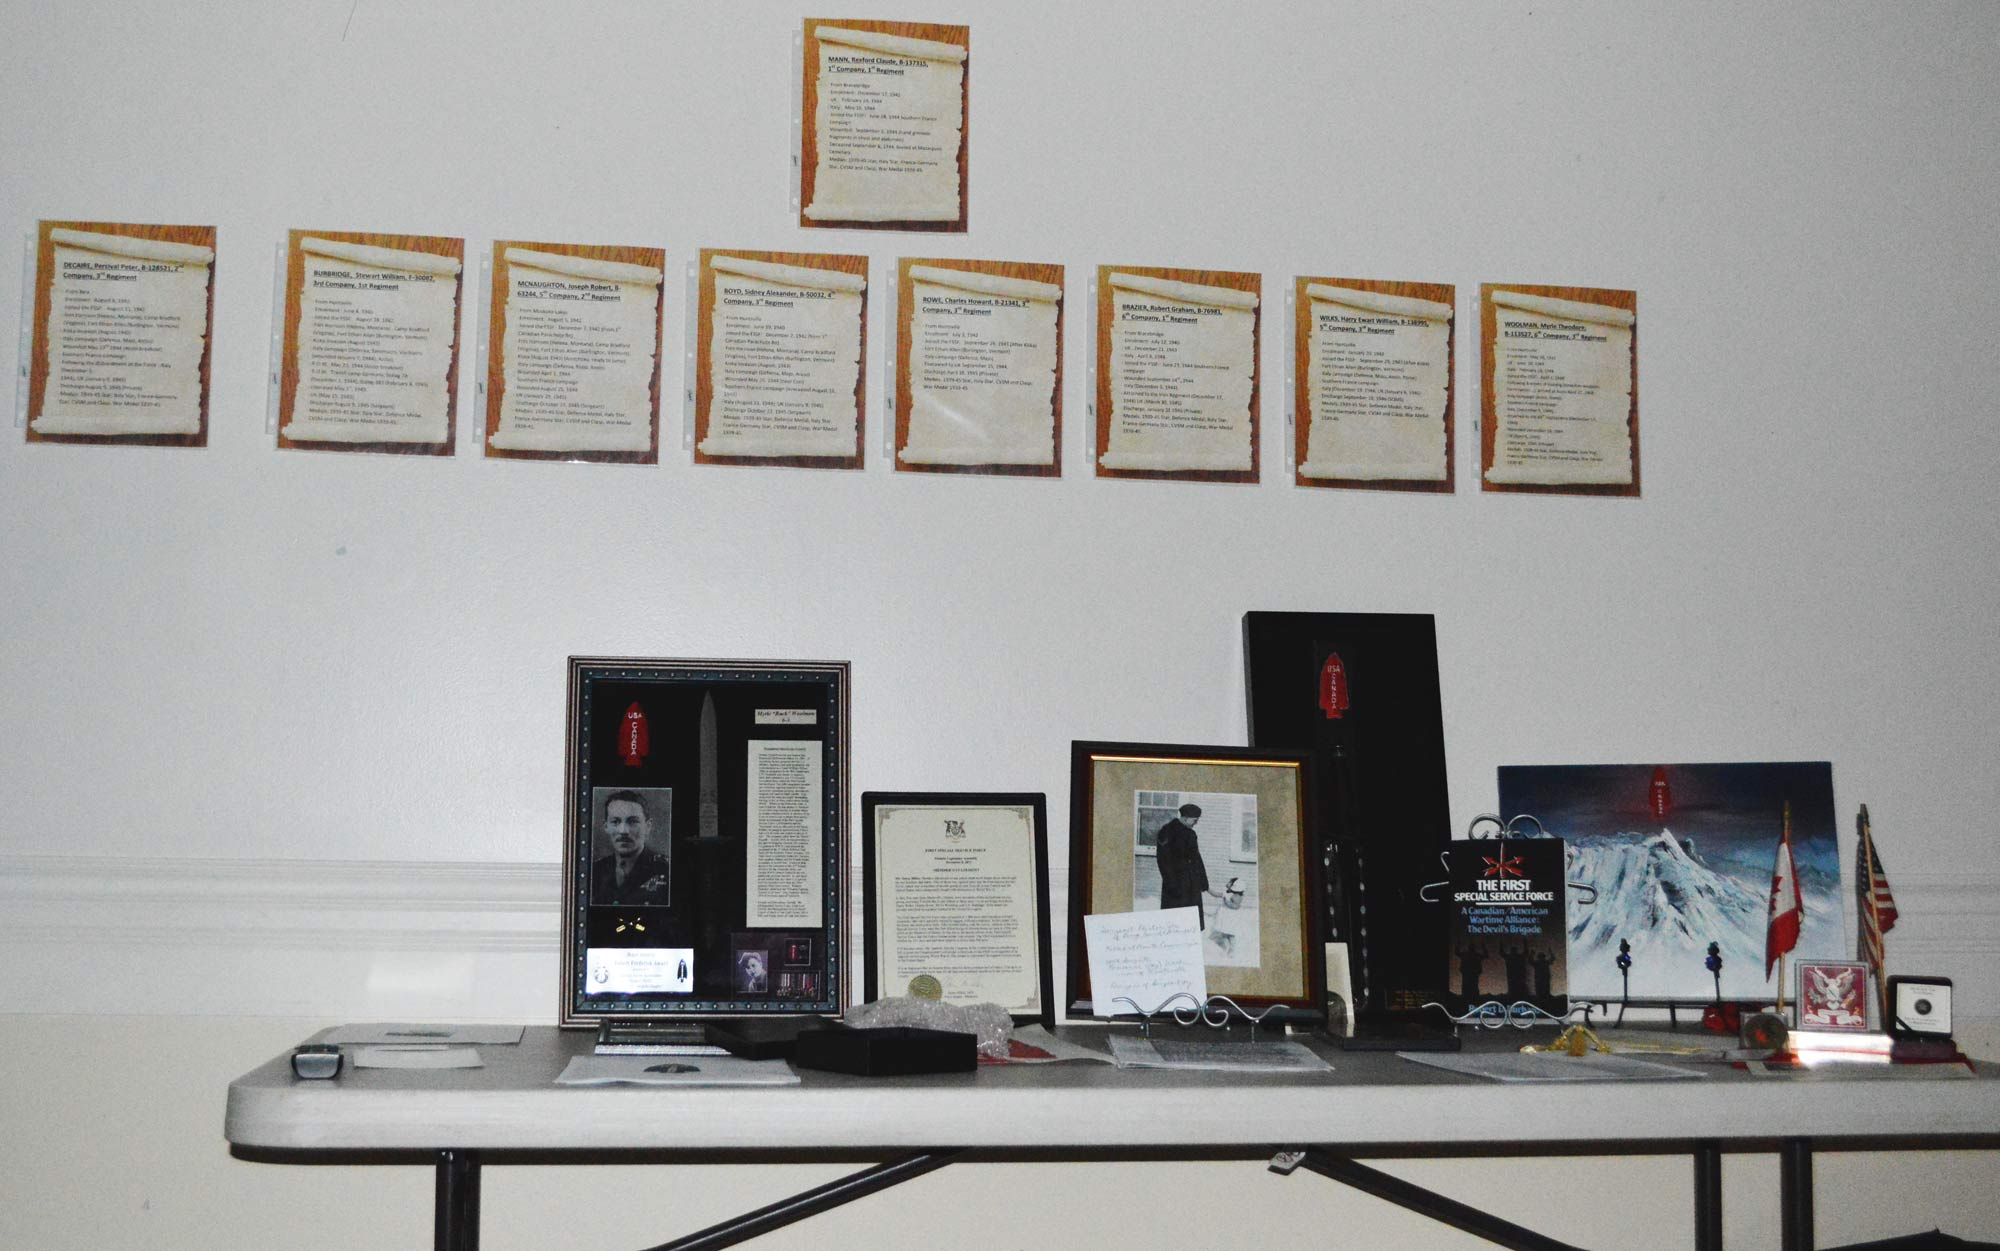 A display of World War II memorabilia brings the past into focus. Above are the names of local men who were apart of the First Special Service Force, a group of highly trained soldiers